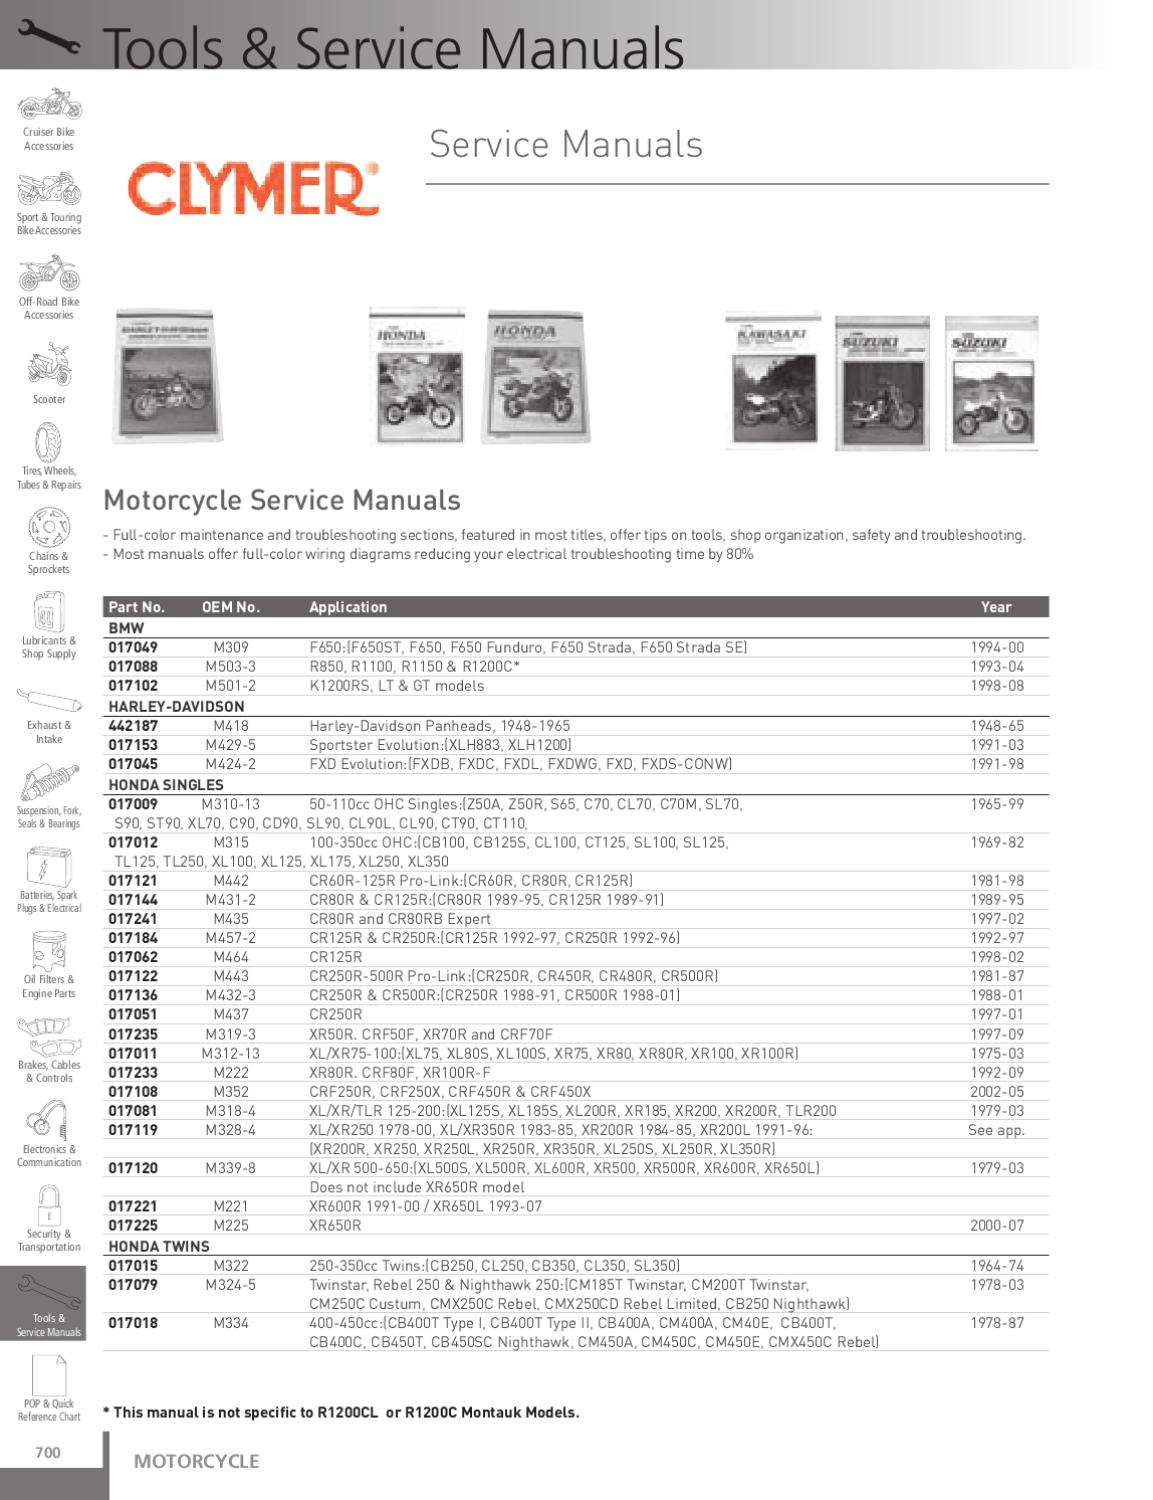 Motorcycle Catalogue - Part 6 By Ignition Products Inc